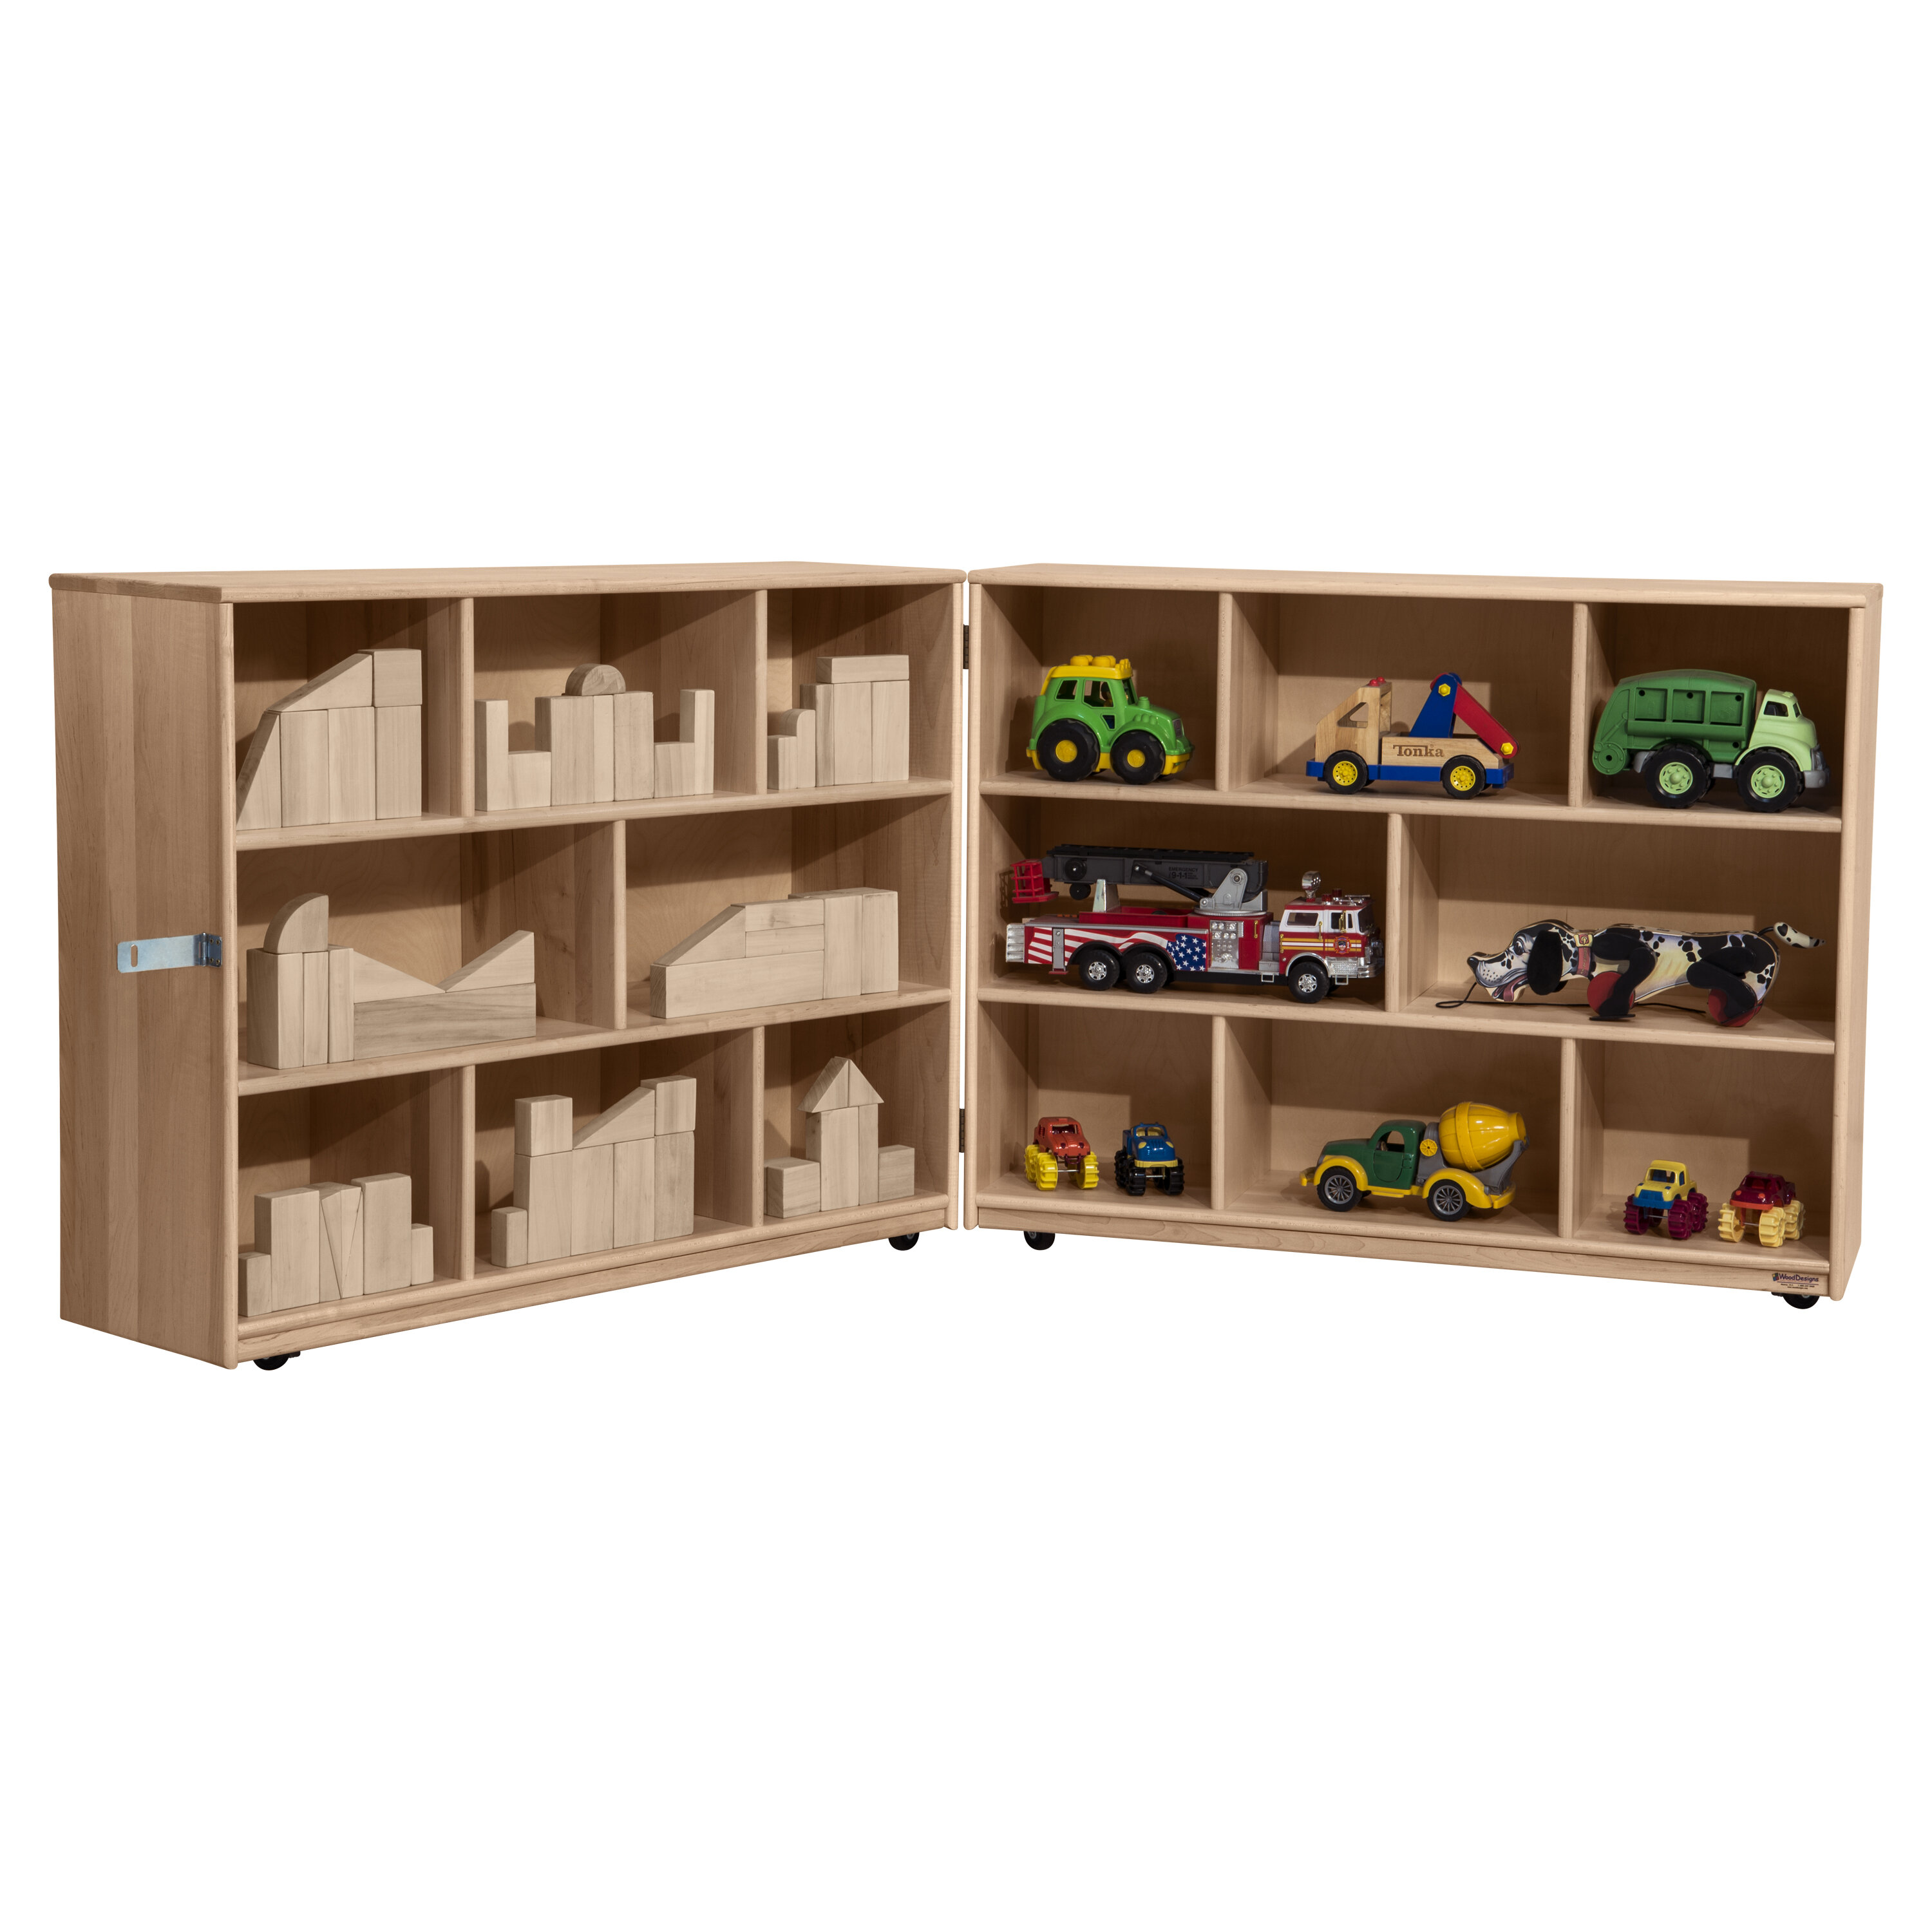 Wood Designs Maple Heritage Folding 16 Compartment Shelving Unit With Casters Wayfair